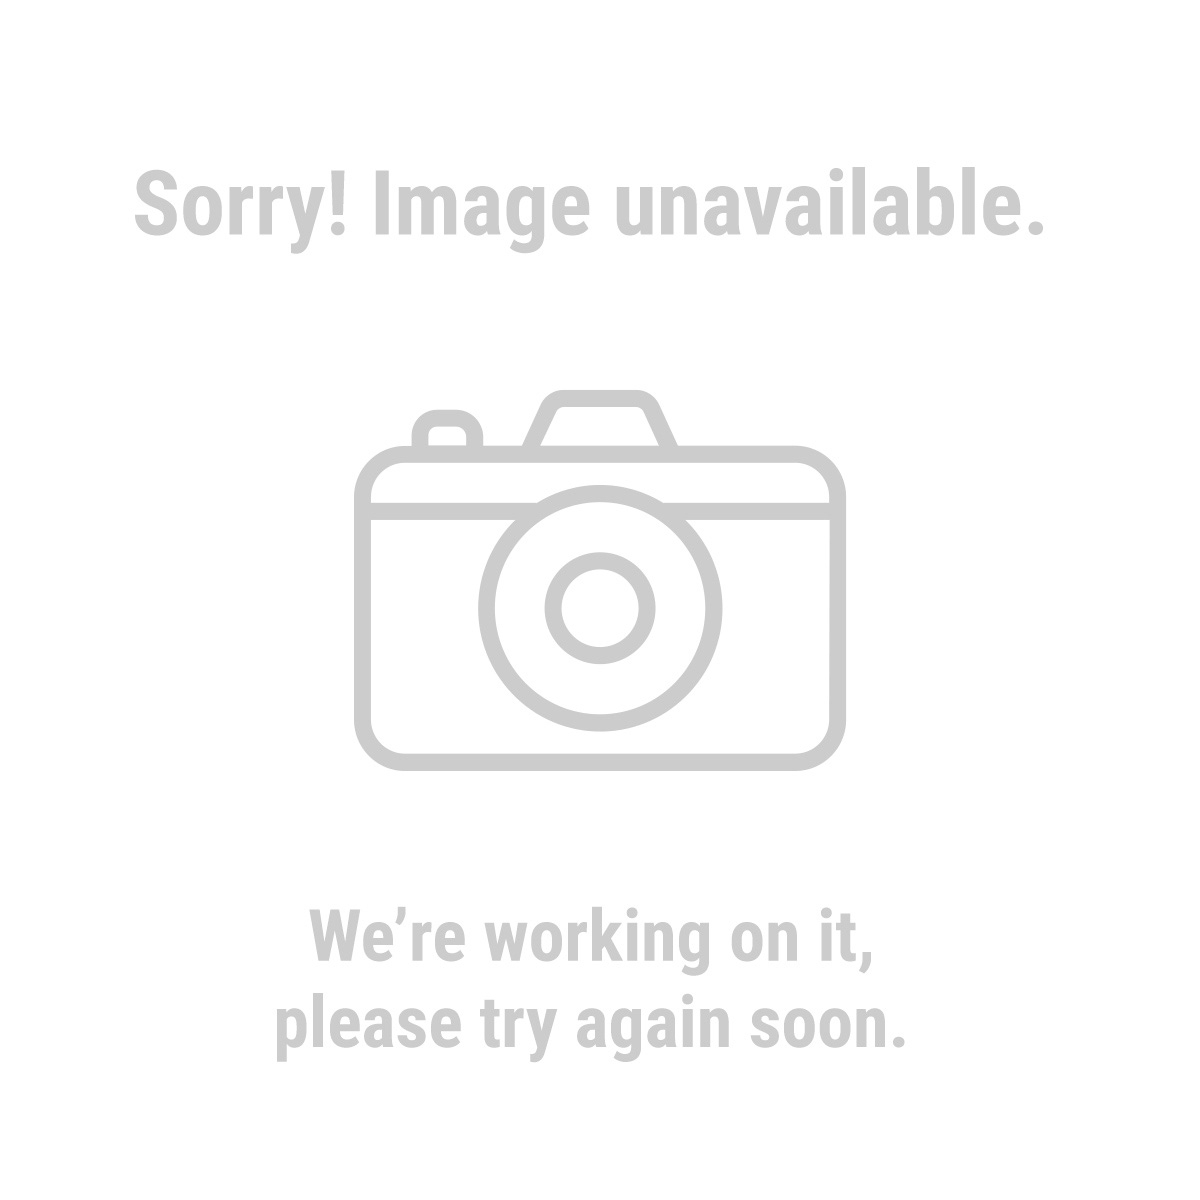 Haul-Master 63057 400 lb. Capacity 1 in. x 15 ft. Ratcheting Tie Downs 4 Pc